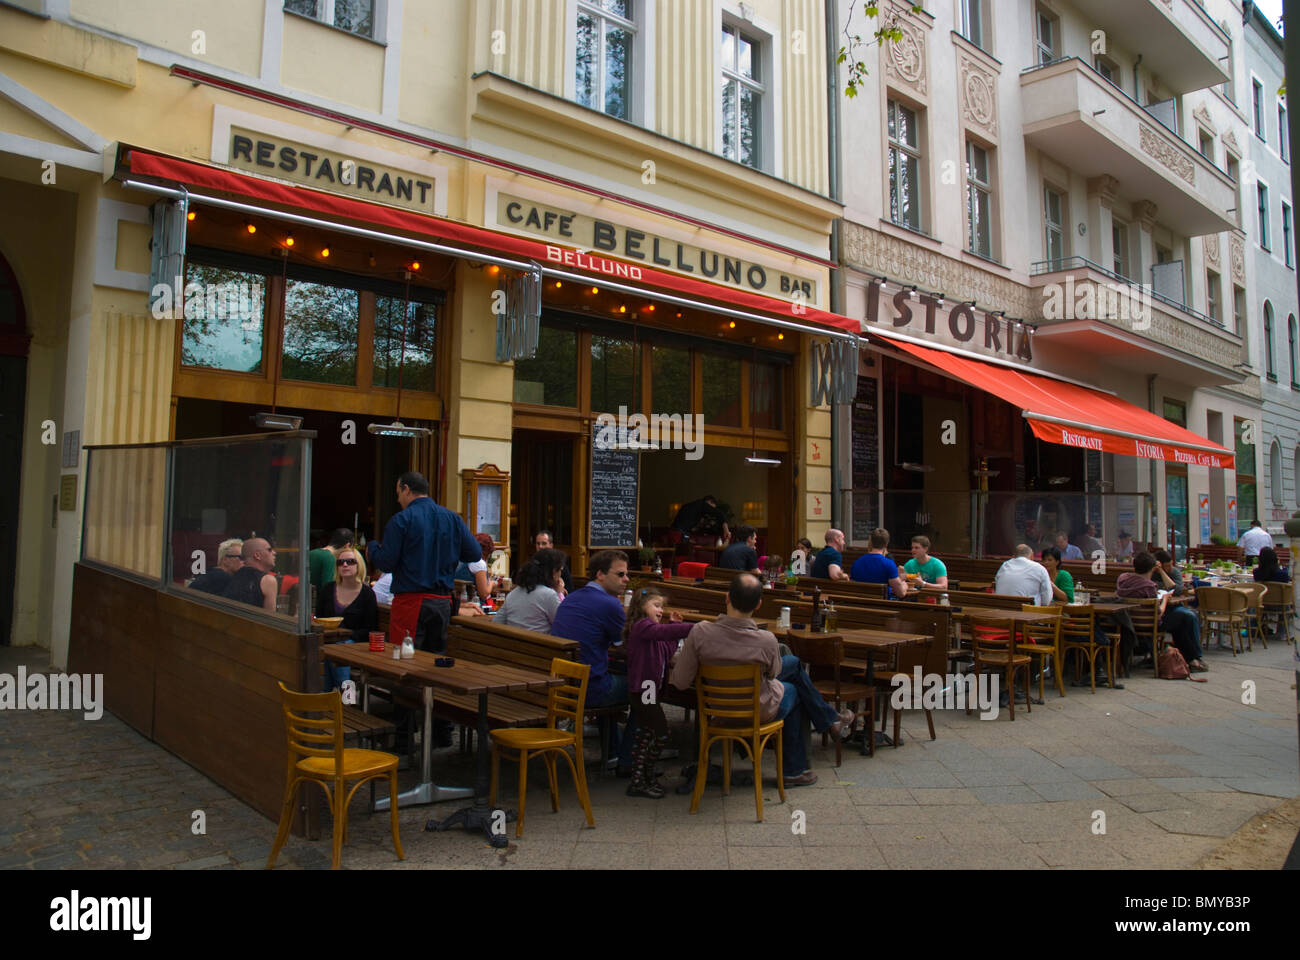 berlin restaurant cafe outdoor stock photos berlin restaurant cafe outdoor stock images alamy. Black Bedroom Furniture Sets. Home Design Ideas